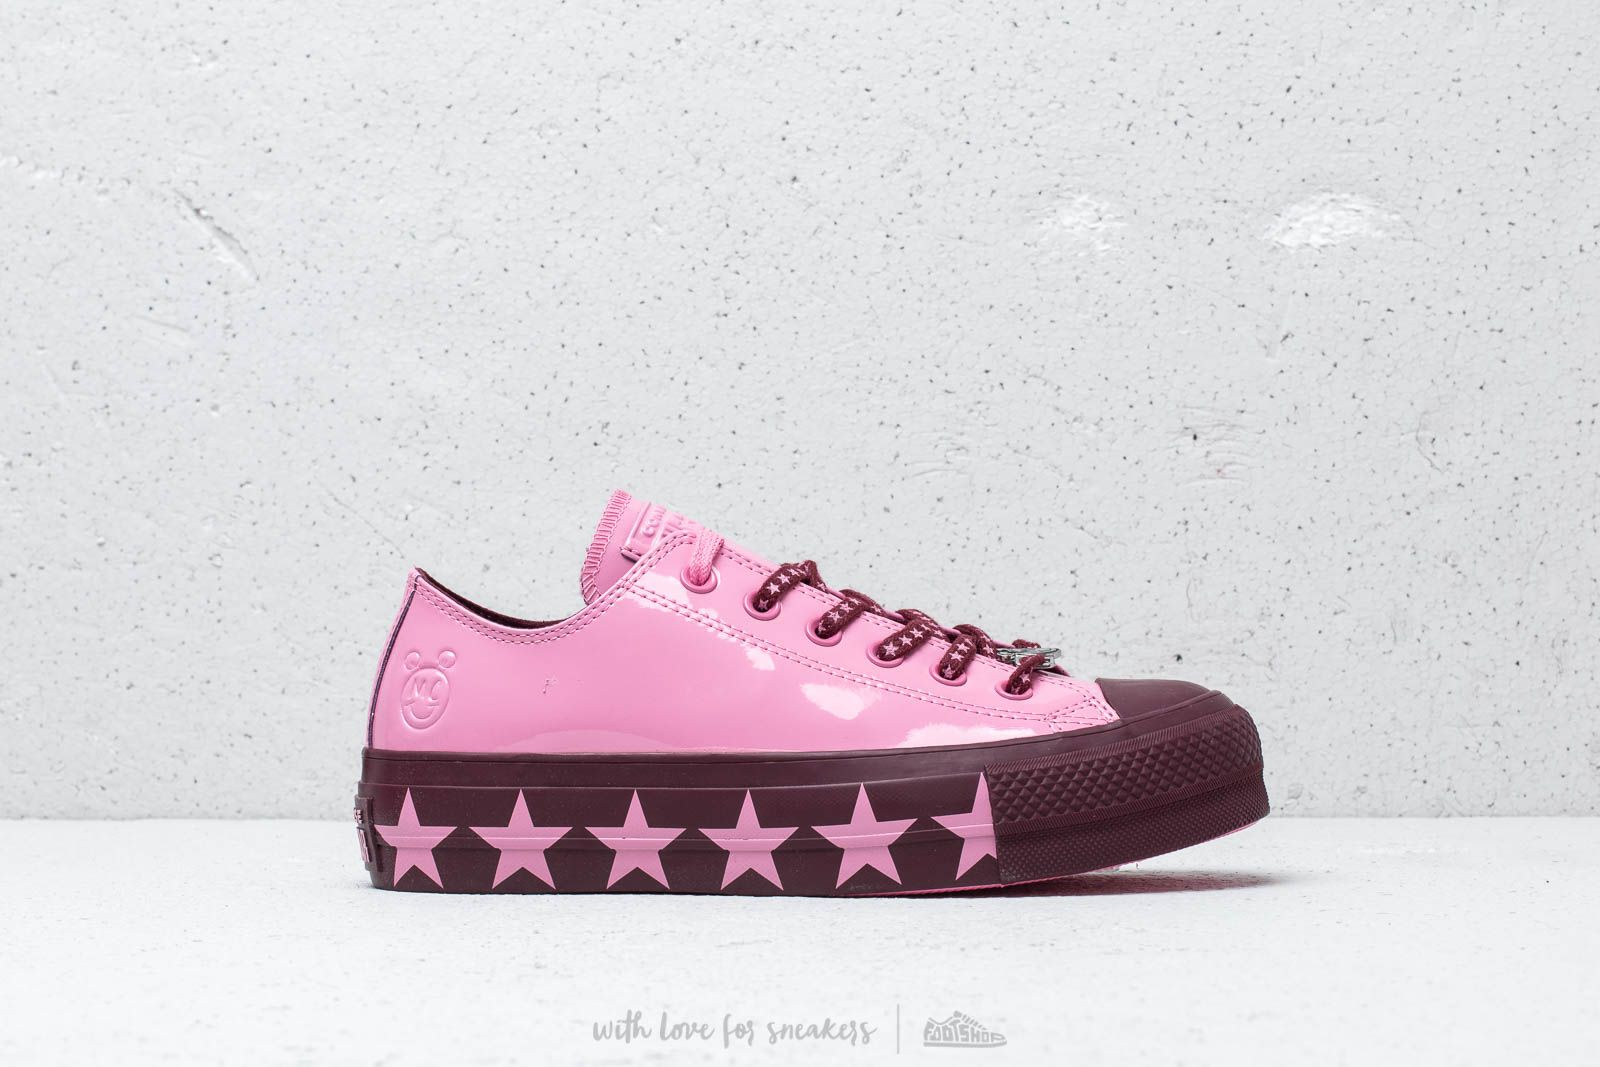 66a87f2b3c6ade Converse x Miley Cyrus Chuck Taylor All Star Lift Ox Pink  Dark Burgundy   Pink